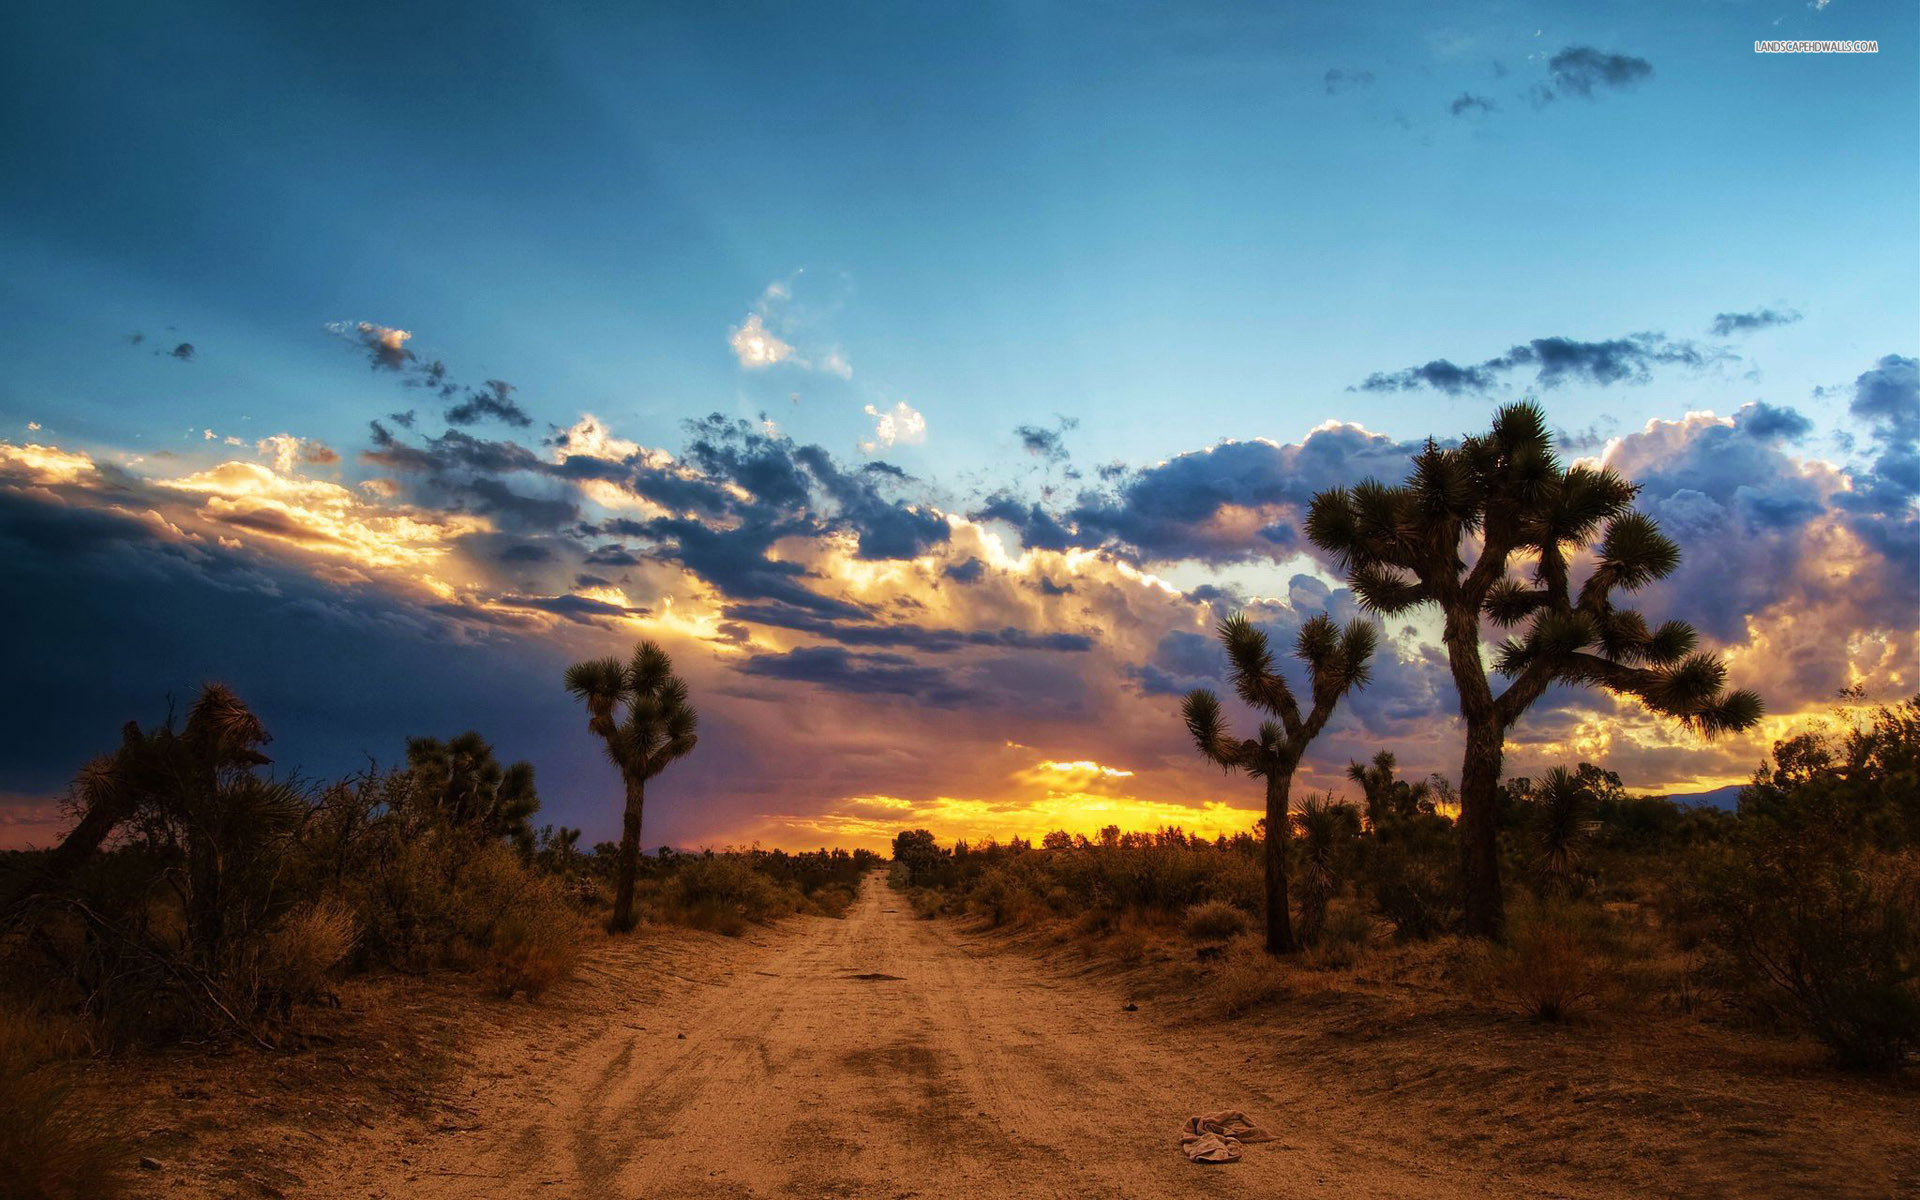 mojave desert scenery wallpaper - photo #1